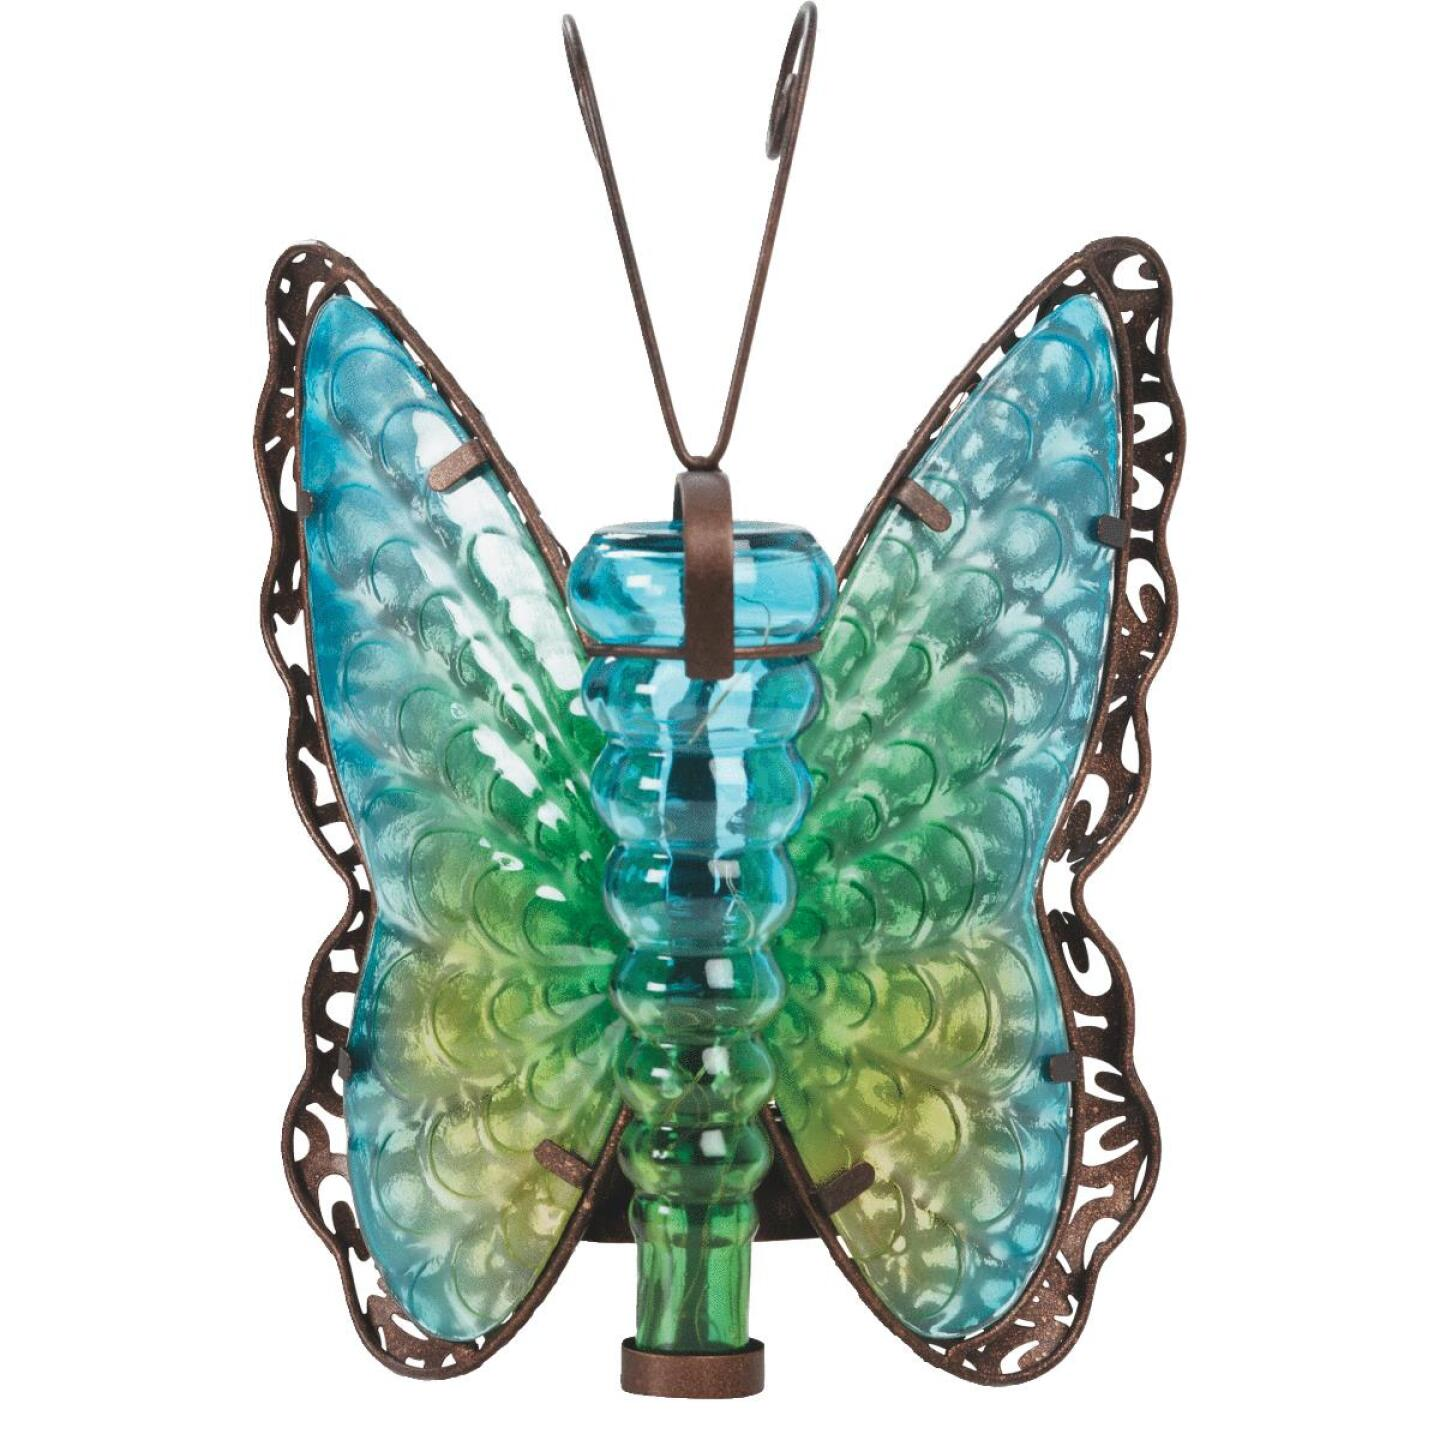 Outdoor Expressions 8 In. W. x 11.25 In. H. x 7 In. D. Butterfly Solar Light Image 5